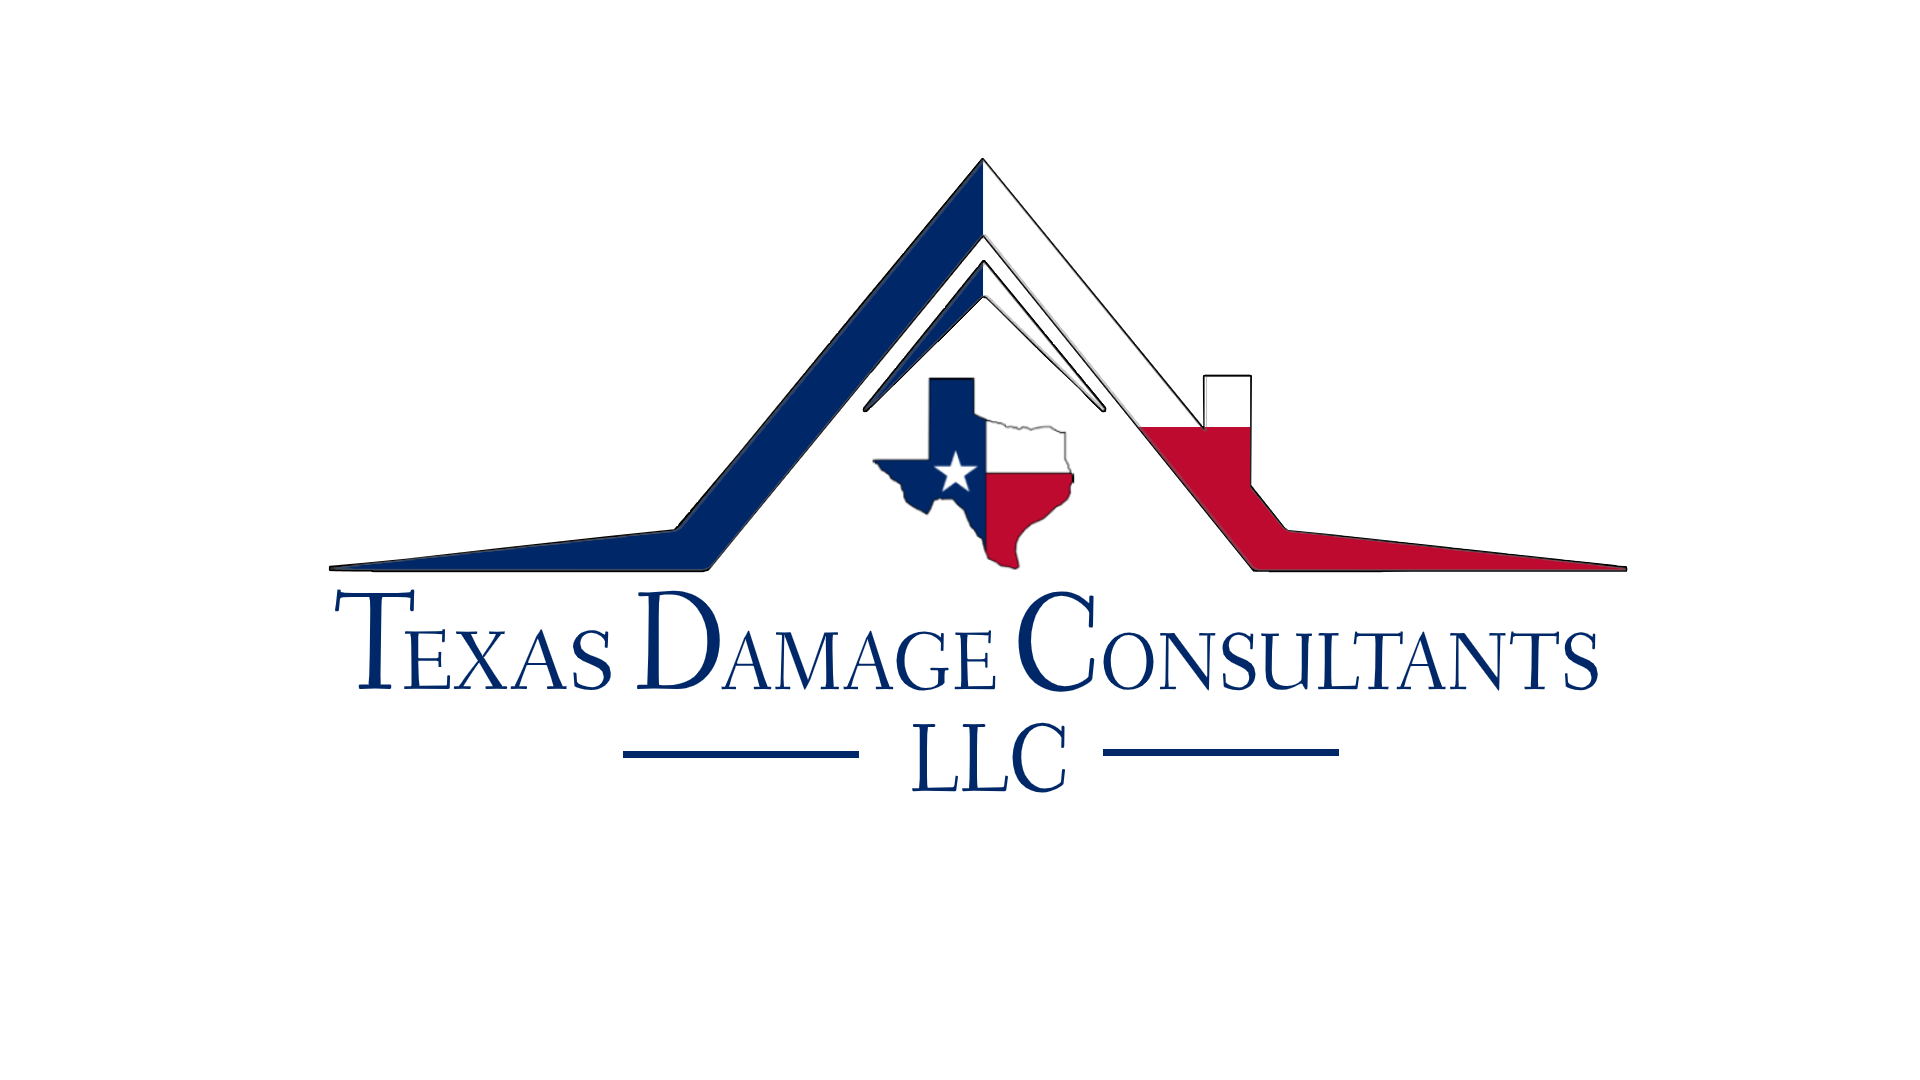 Texas Damage Consultants, LLC Offers Comprehensive and Detailed Roof Inspection Before Conducting Roof Repairs and Replacements in Edinburg, TX